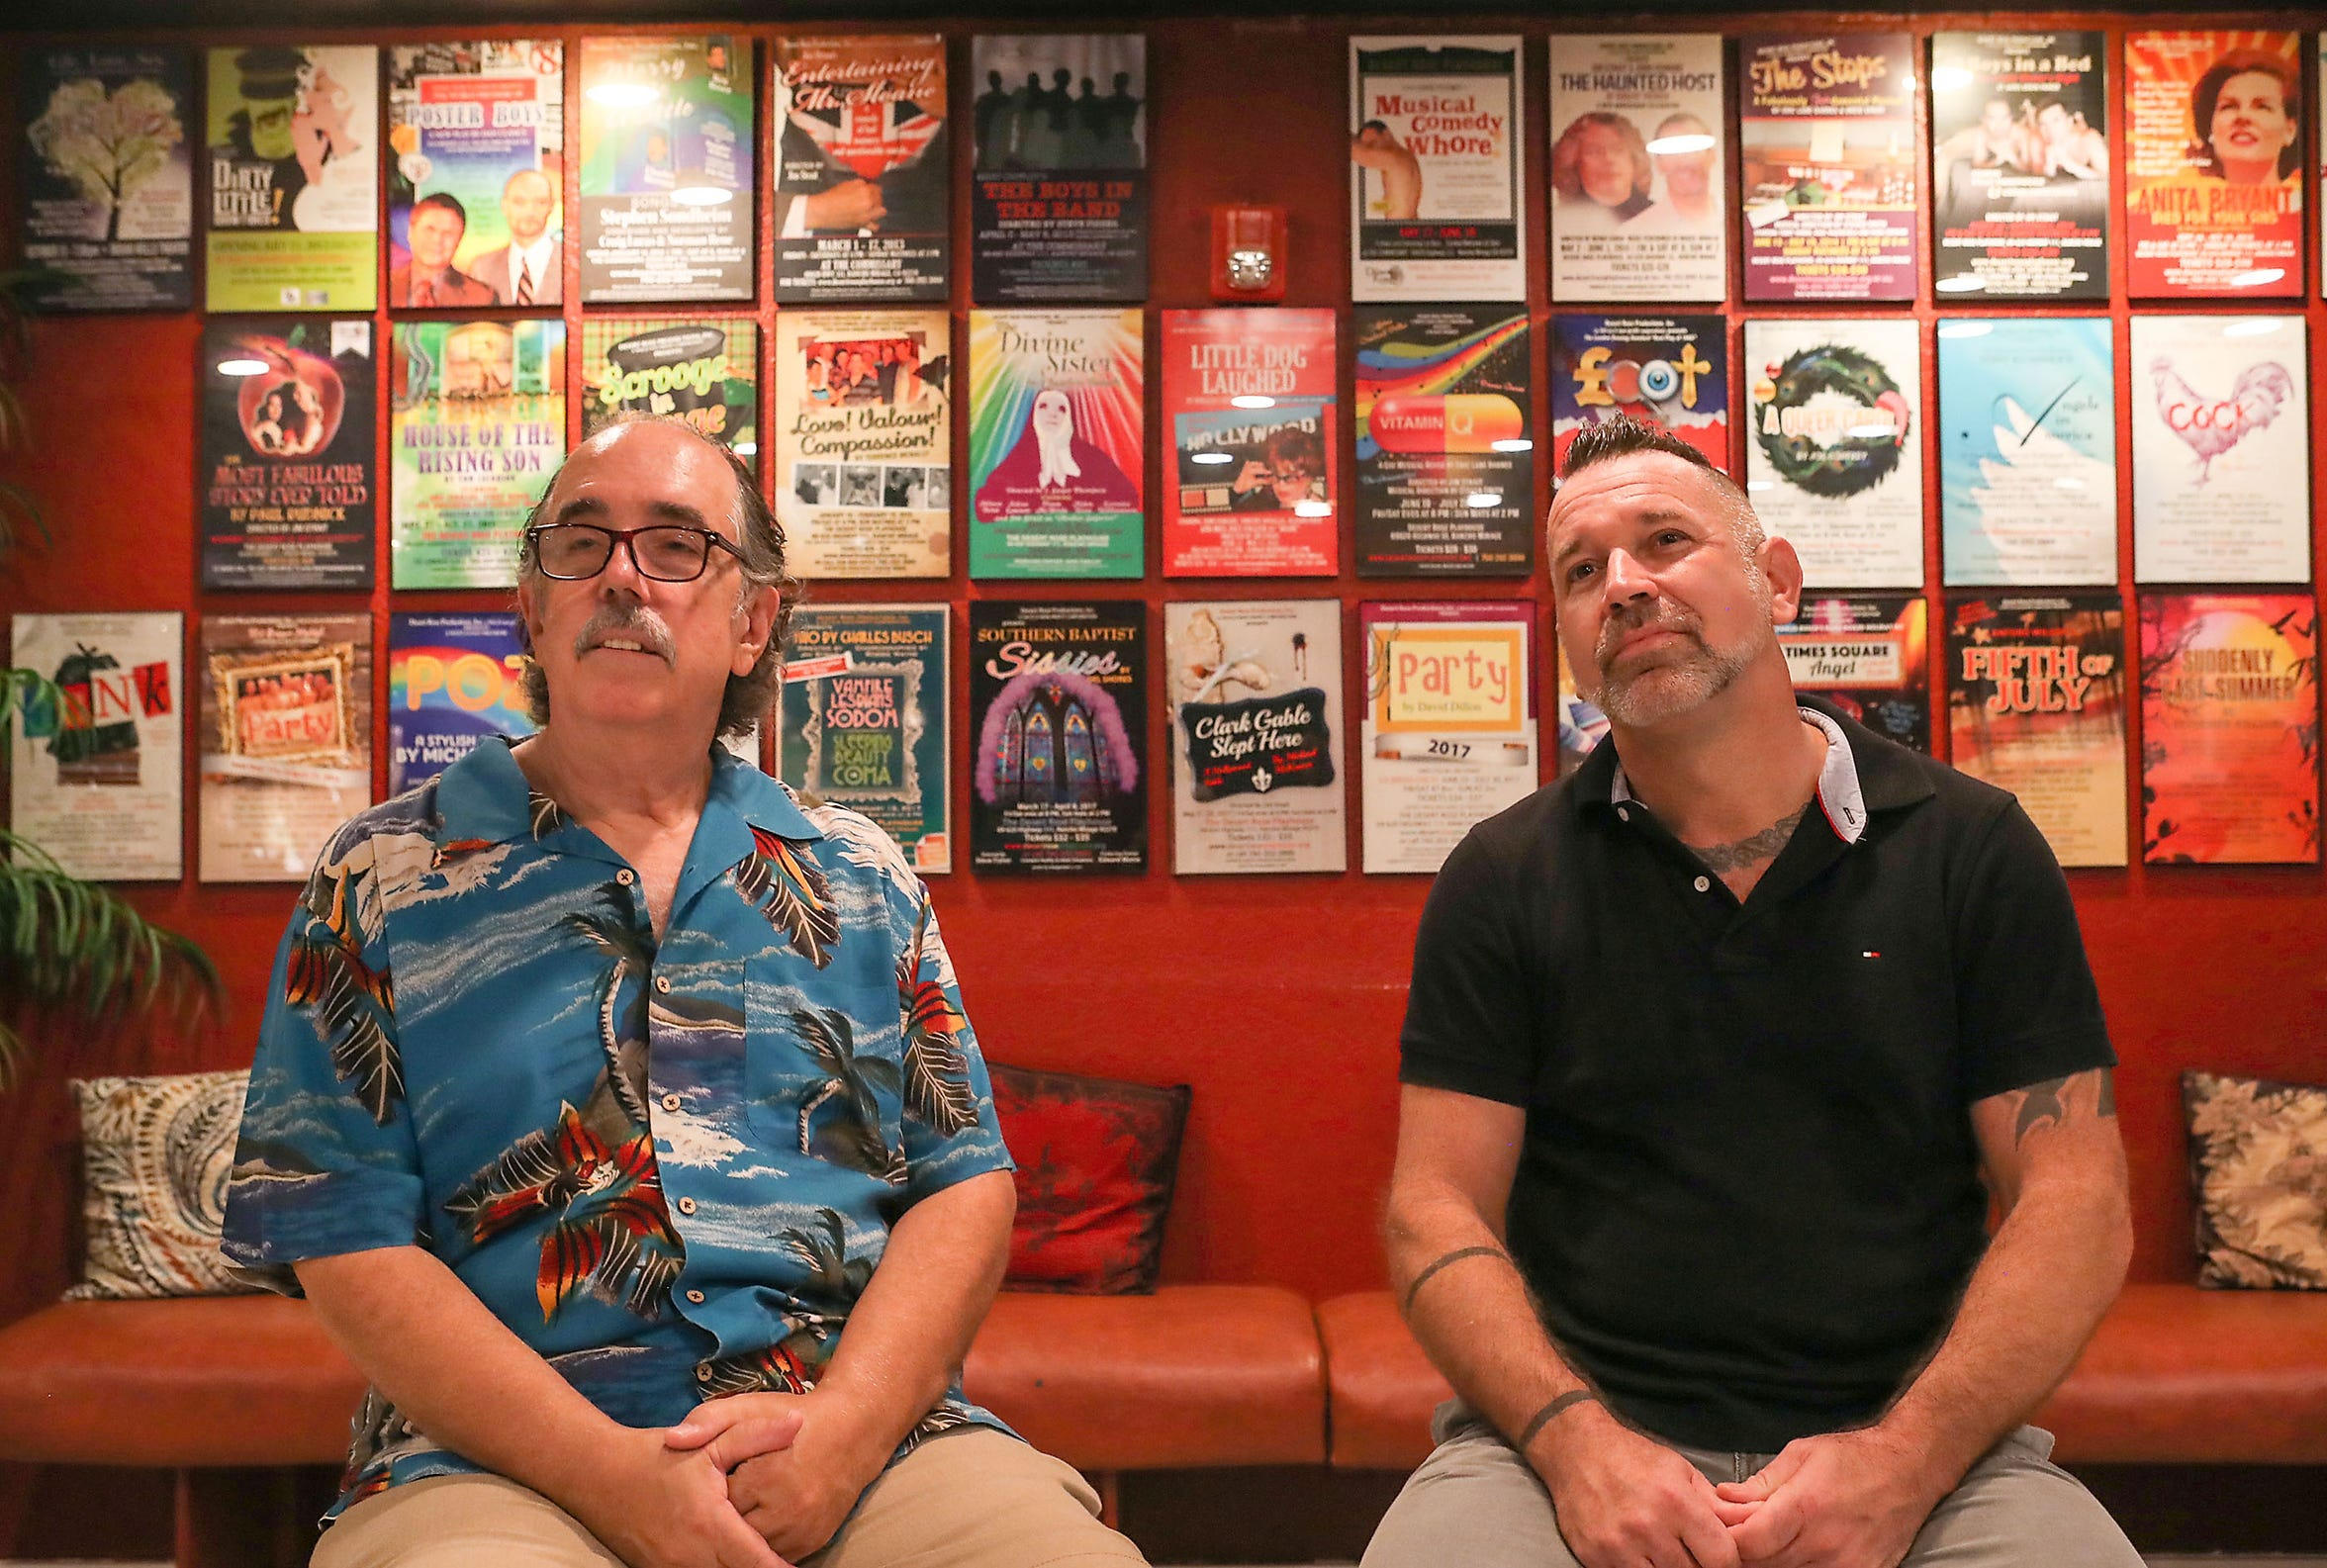 Paul Taylor and Robbie Wayne of the Desert Rose Playhouse talk about the Rancho Mirage-based theater.